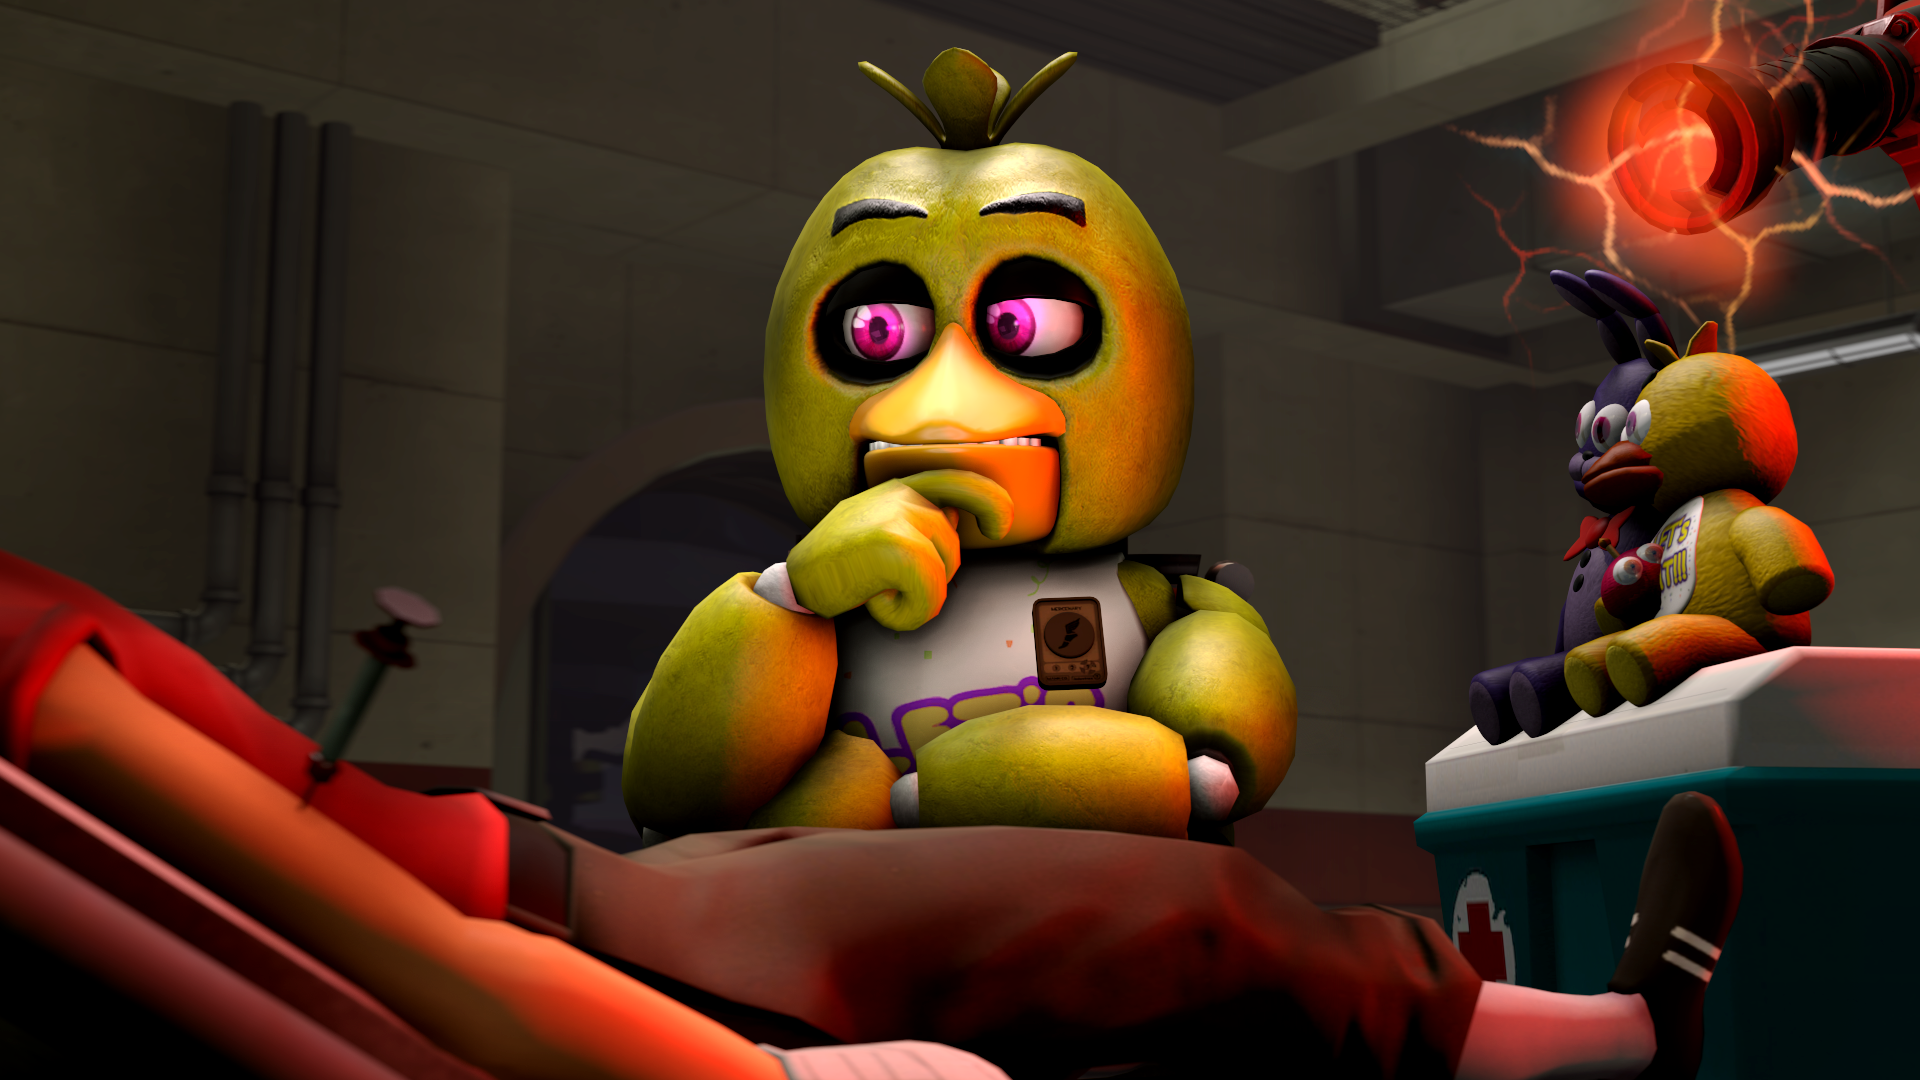 Chica tf2 and fnaf crossover by talondang on deviantart